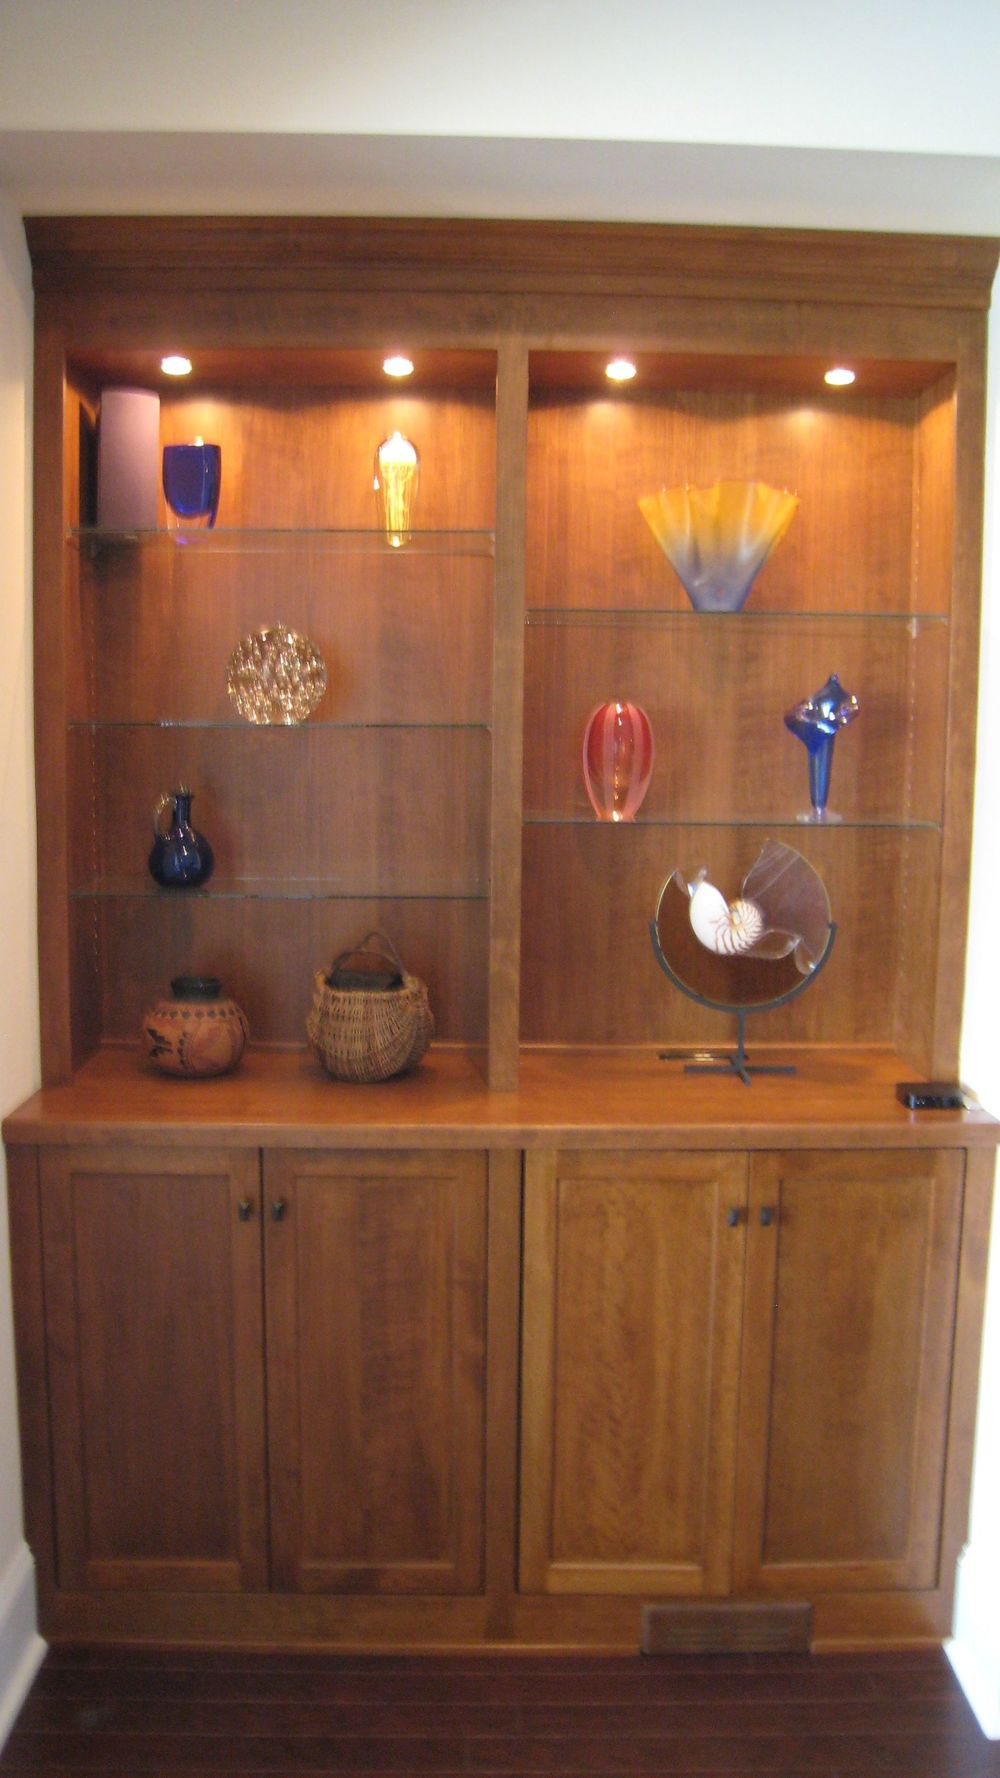 Custom built Curio Cabinet & Wildwood Artisan: Custom made cabinetry u2014 Wildwood Artisan